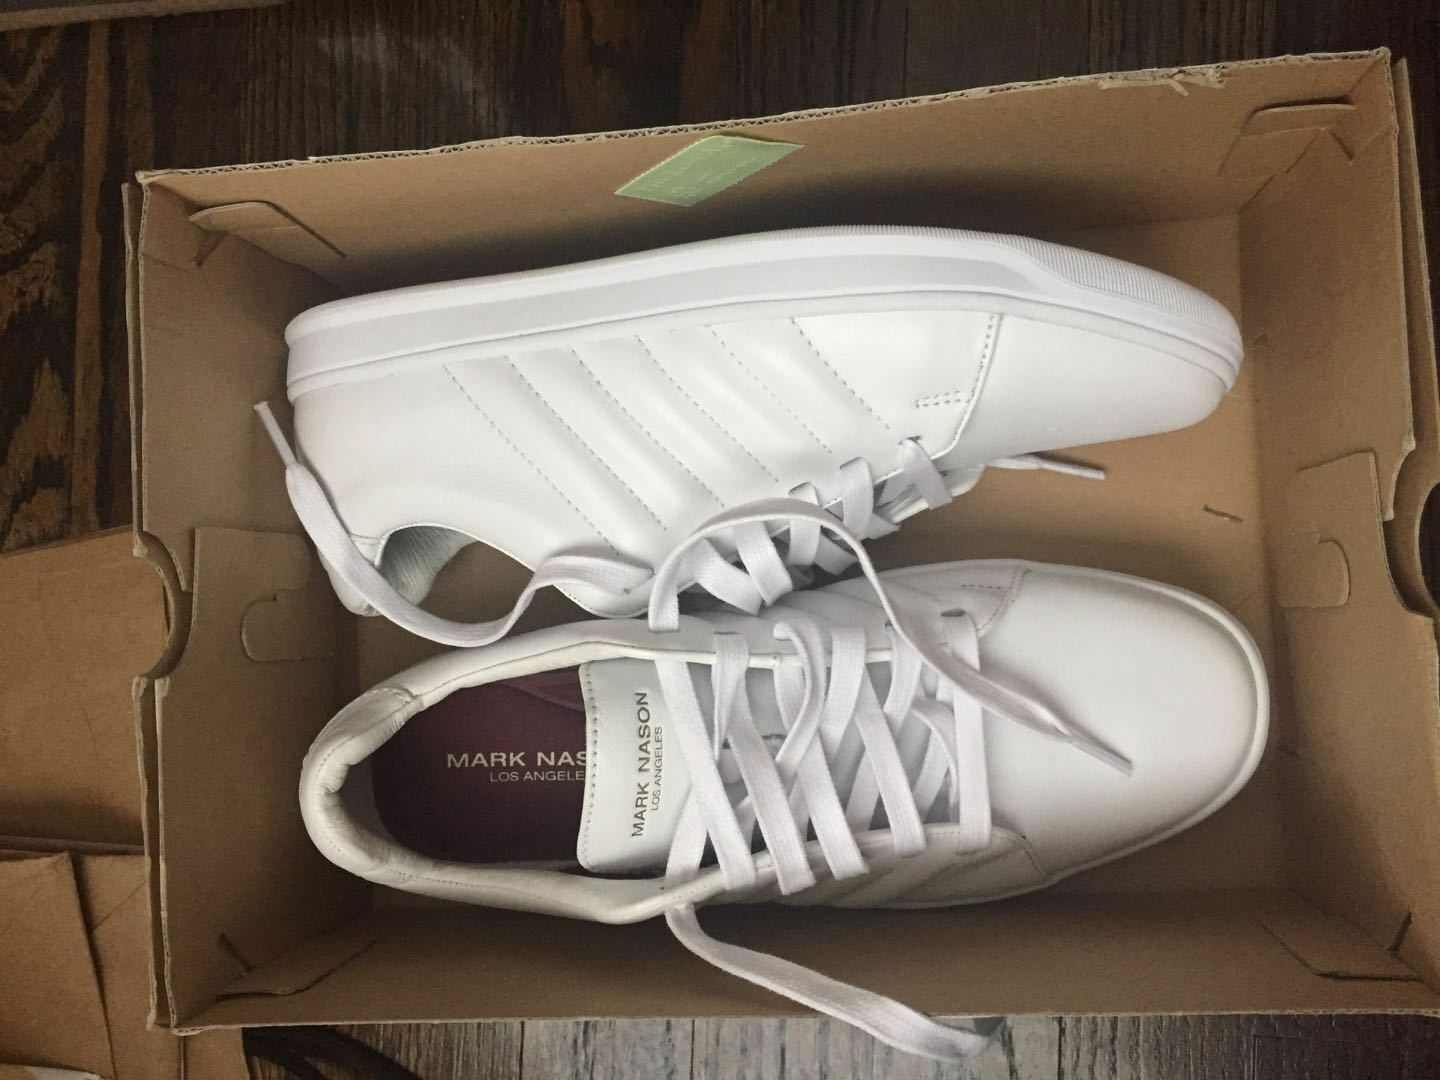 MARK NASON LOS ANGELES Caprock 68551 Men's US7 EUR39.5 White LEATHER Sneakers